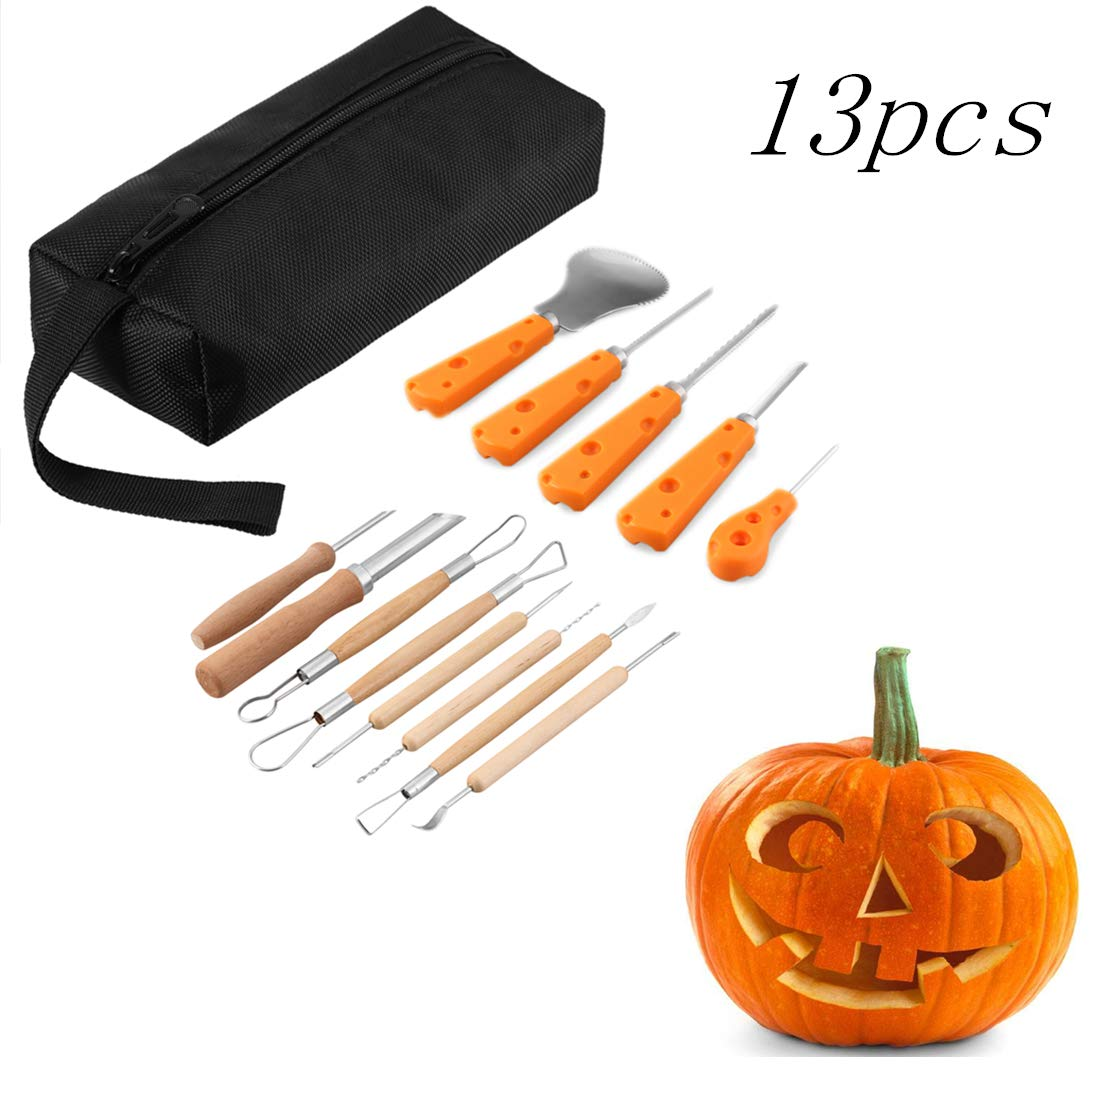 13 Piece Sturdy Stainless Steel Pumpkin Carving Tool Kit for Halloween Creative Carving Yabone